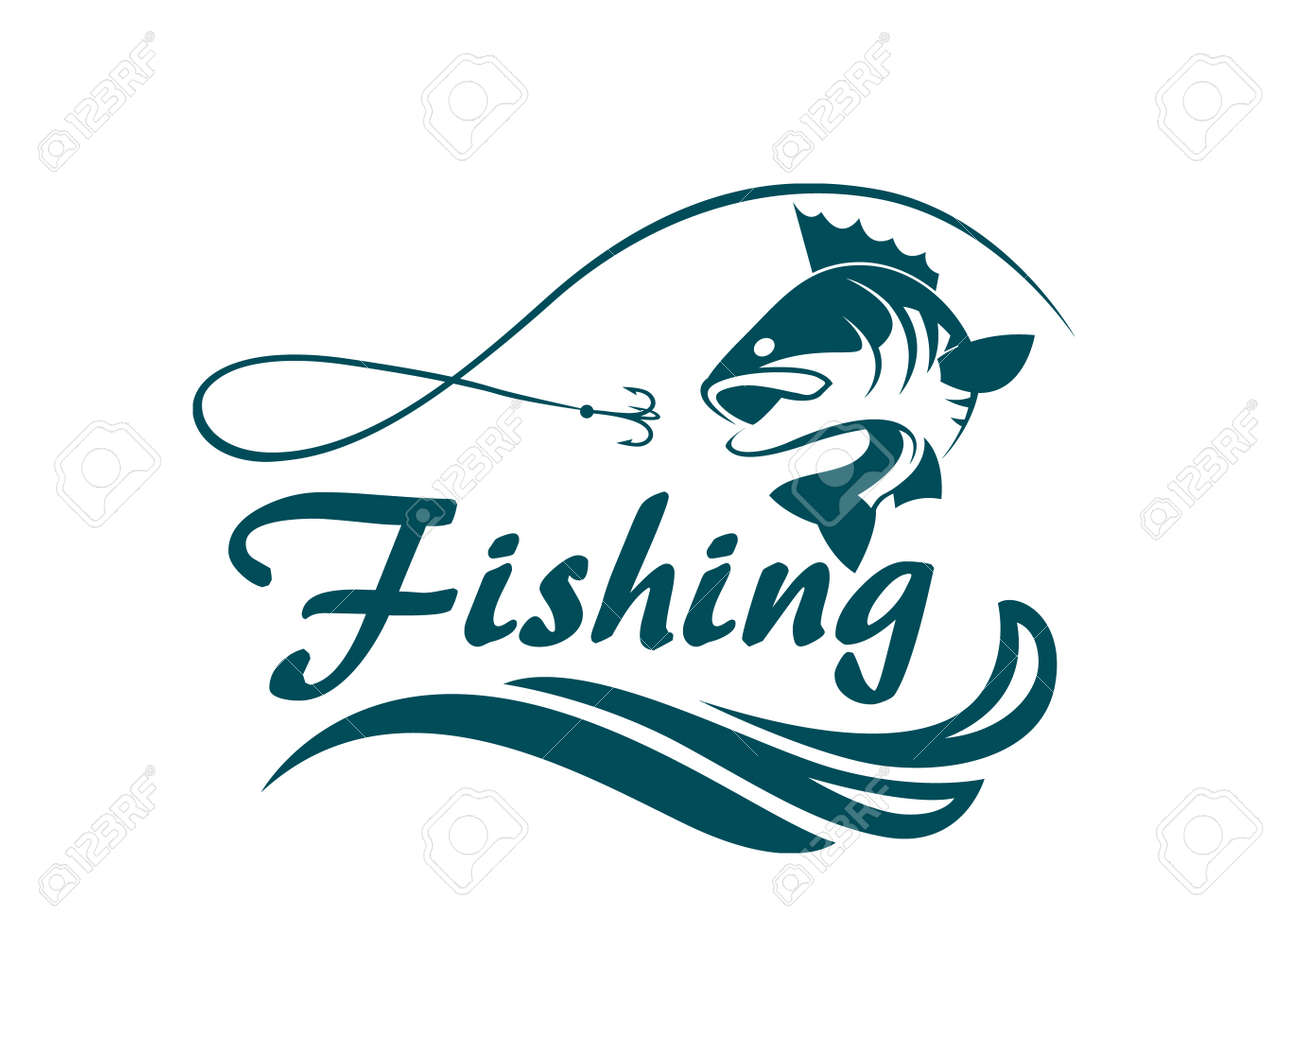 Fishing emblem with bass, waves and hook - 83681714